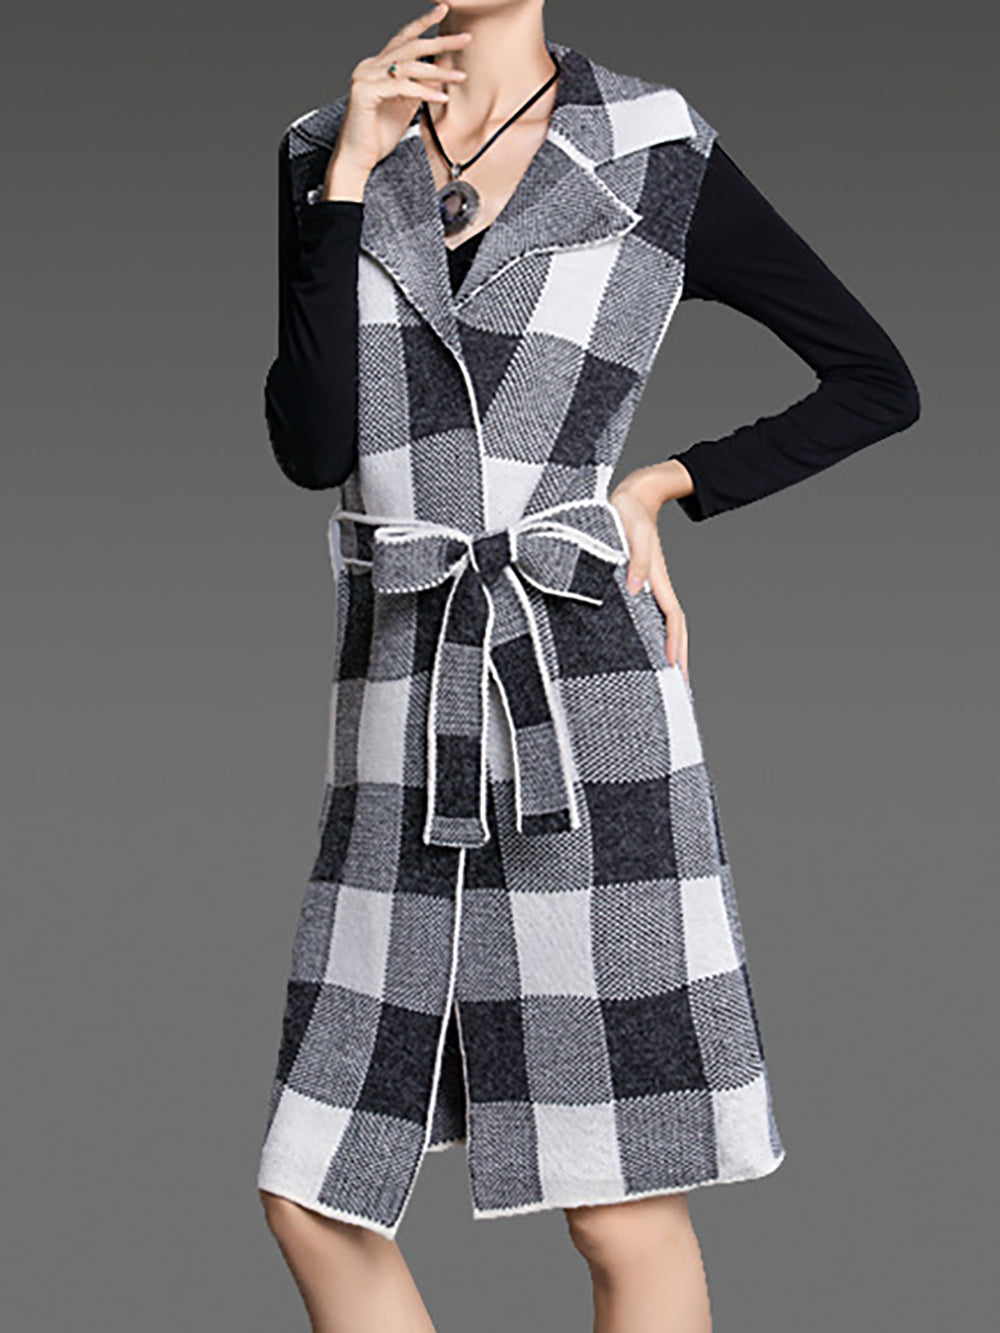 Checkered/plaid Sleeveless Lapel Work Shift Vests And Gilet